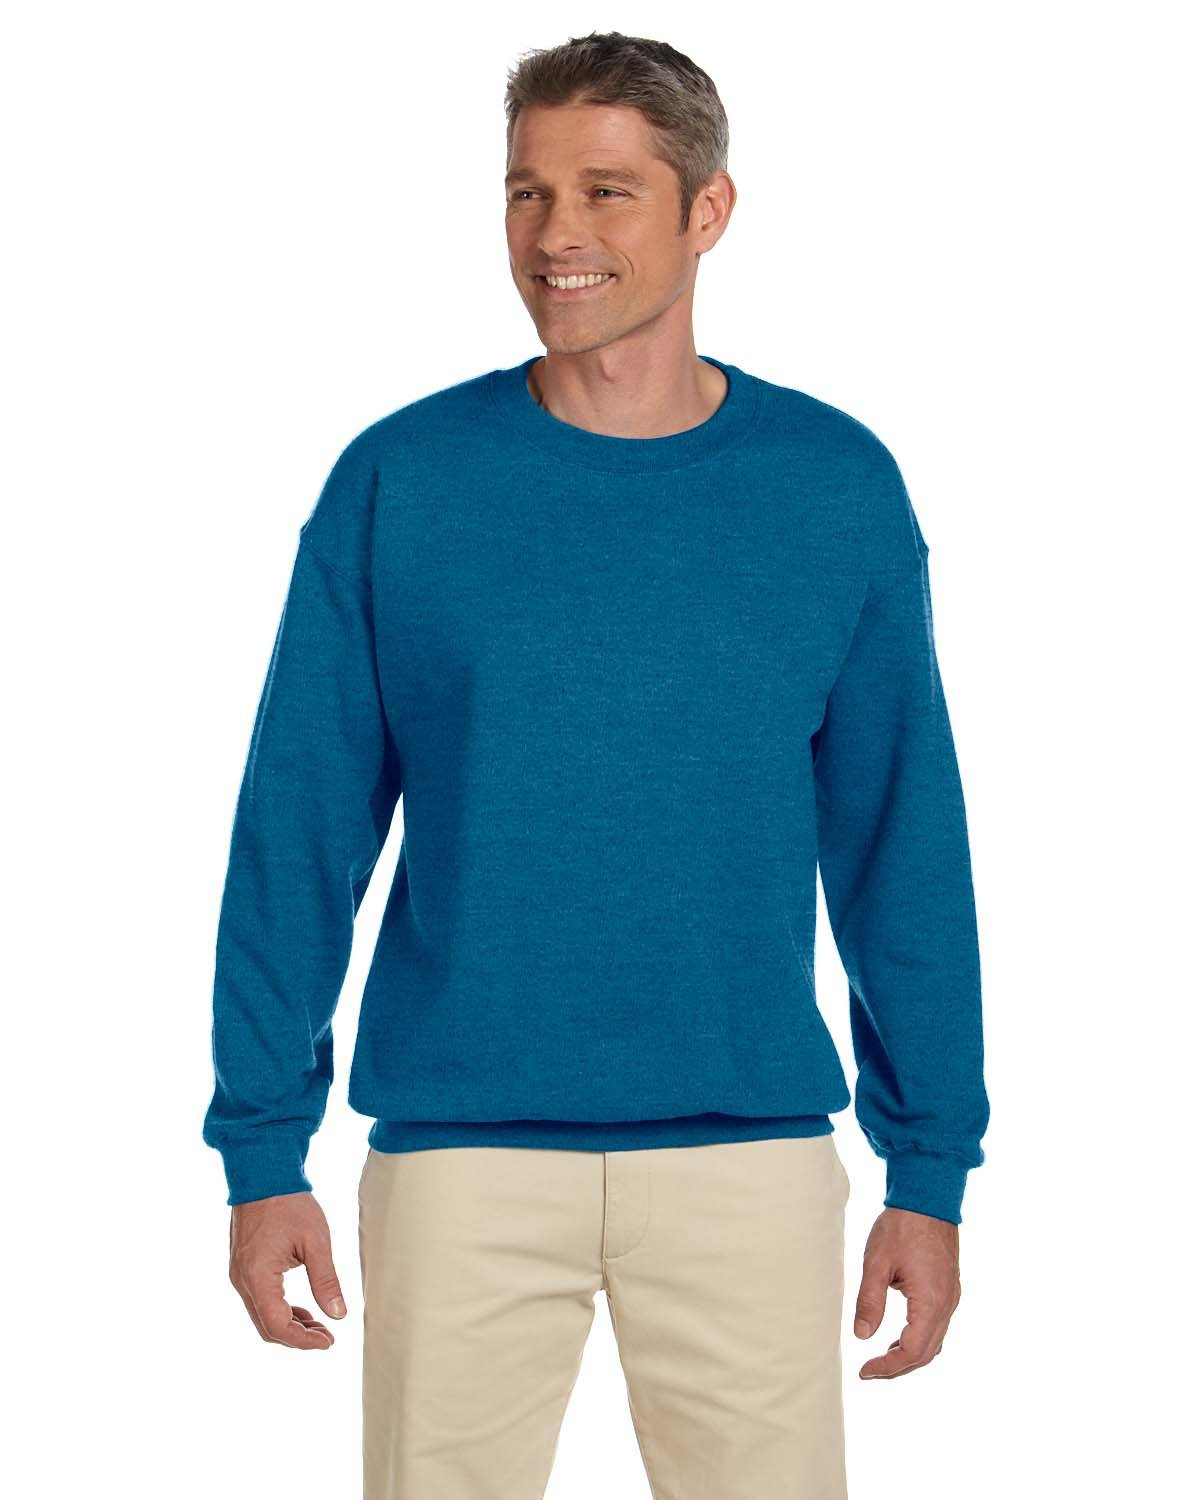 Gildan - G180 - Adult Heavy Blend™  8 oz., 50/50 Fleece Crew